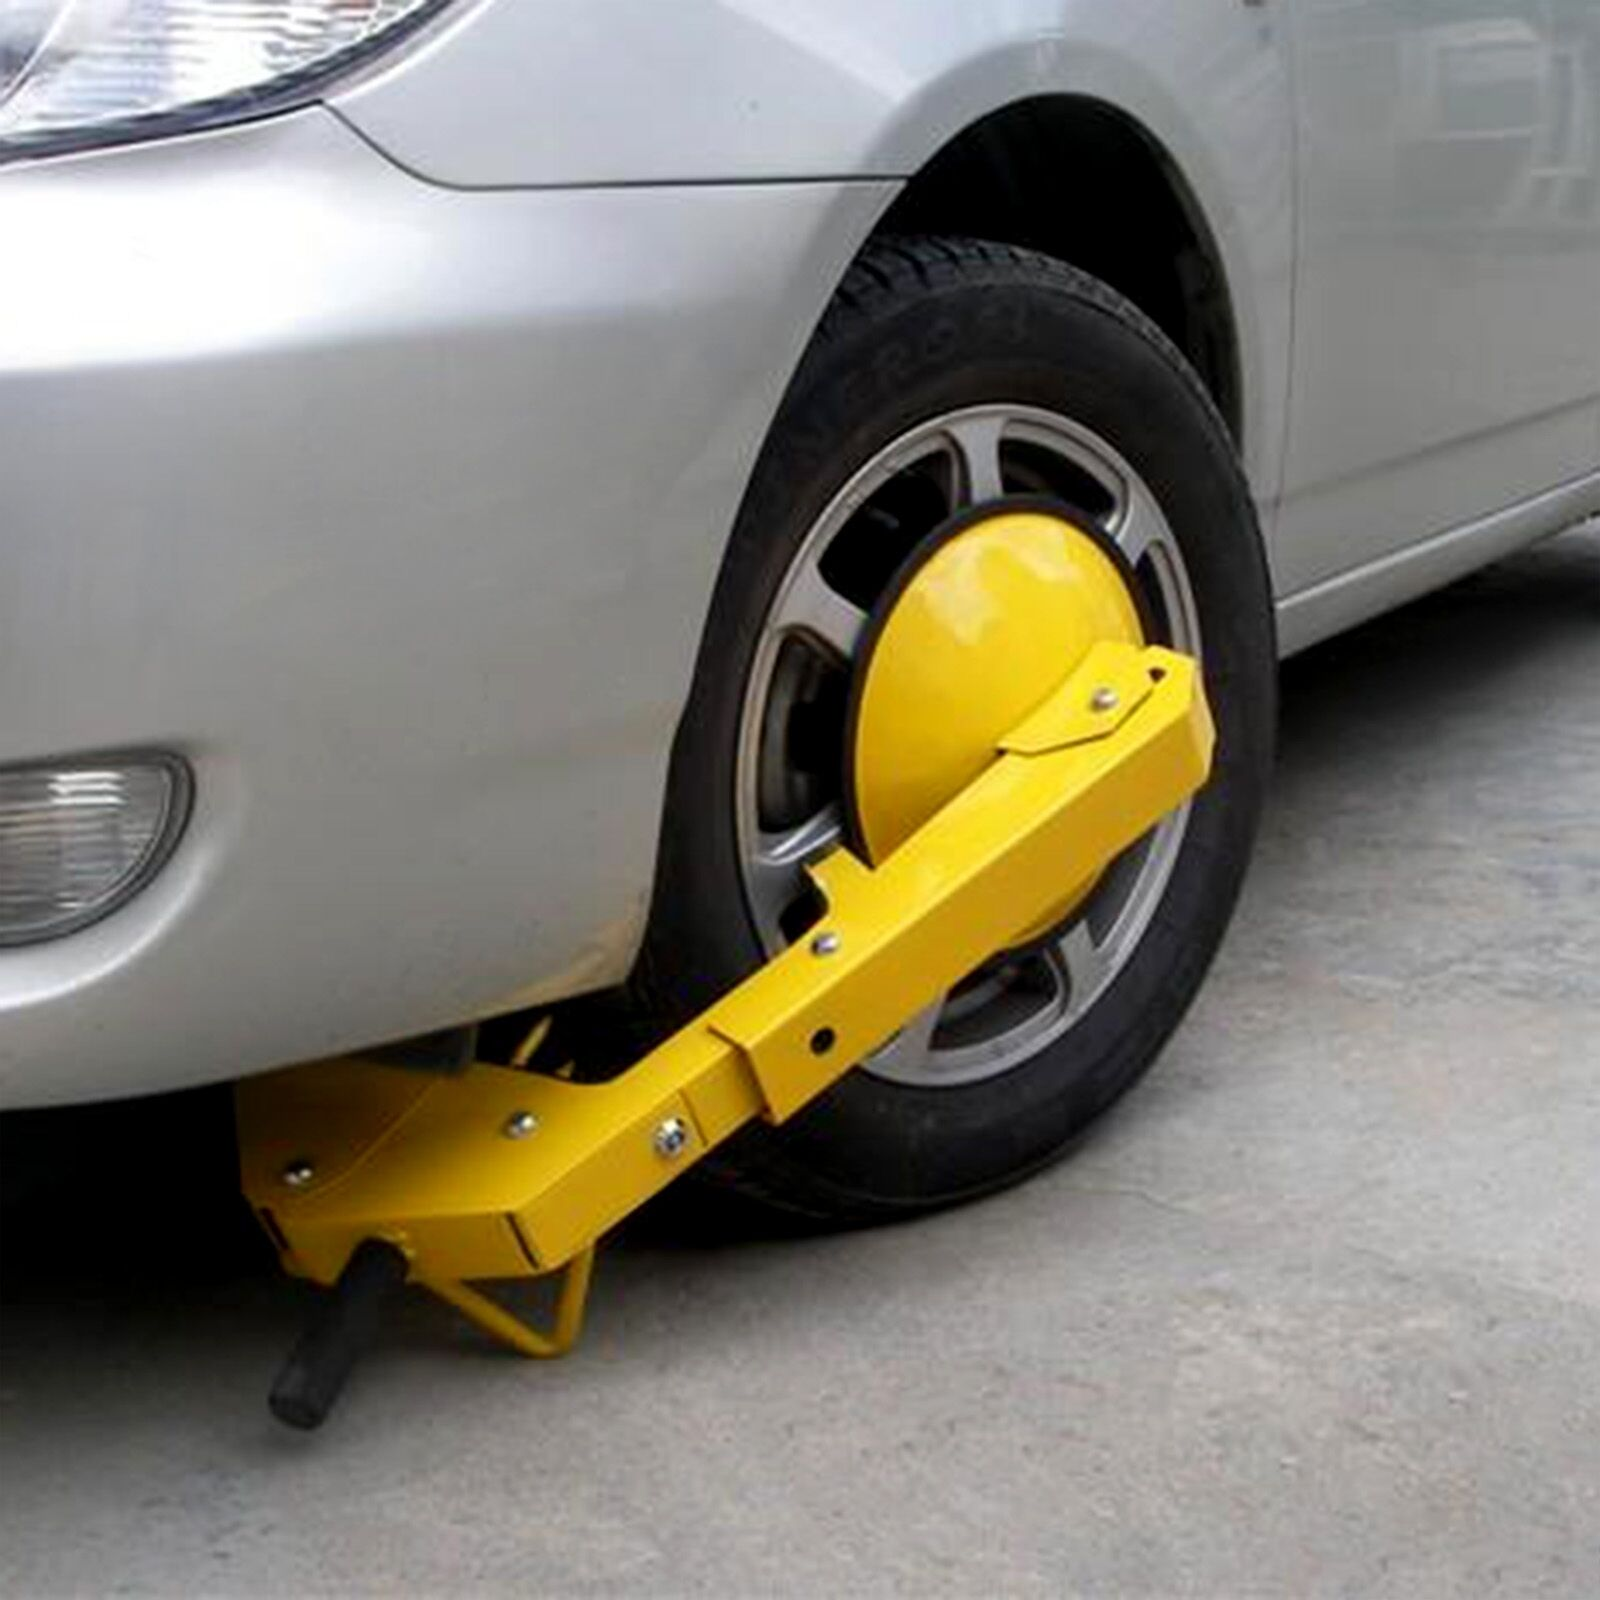 Wheel Lock Clamp Boot Parking Tire Claw Trailer Auto Car Truck - Boot Trailer